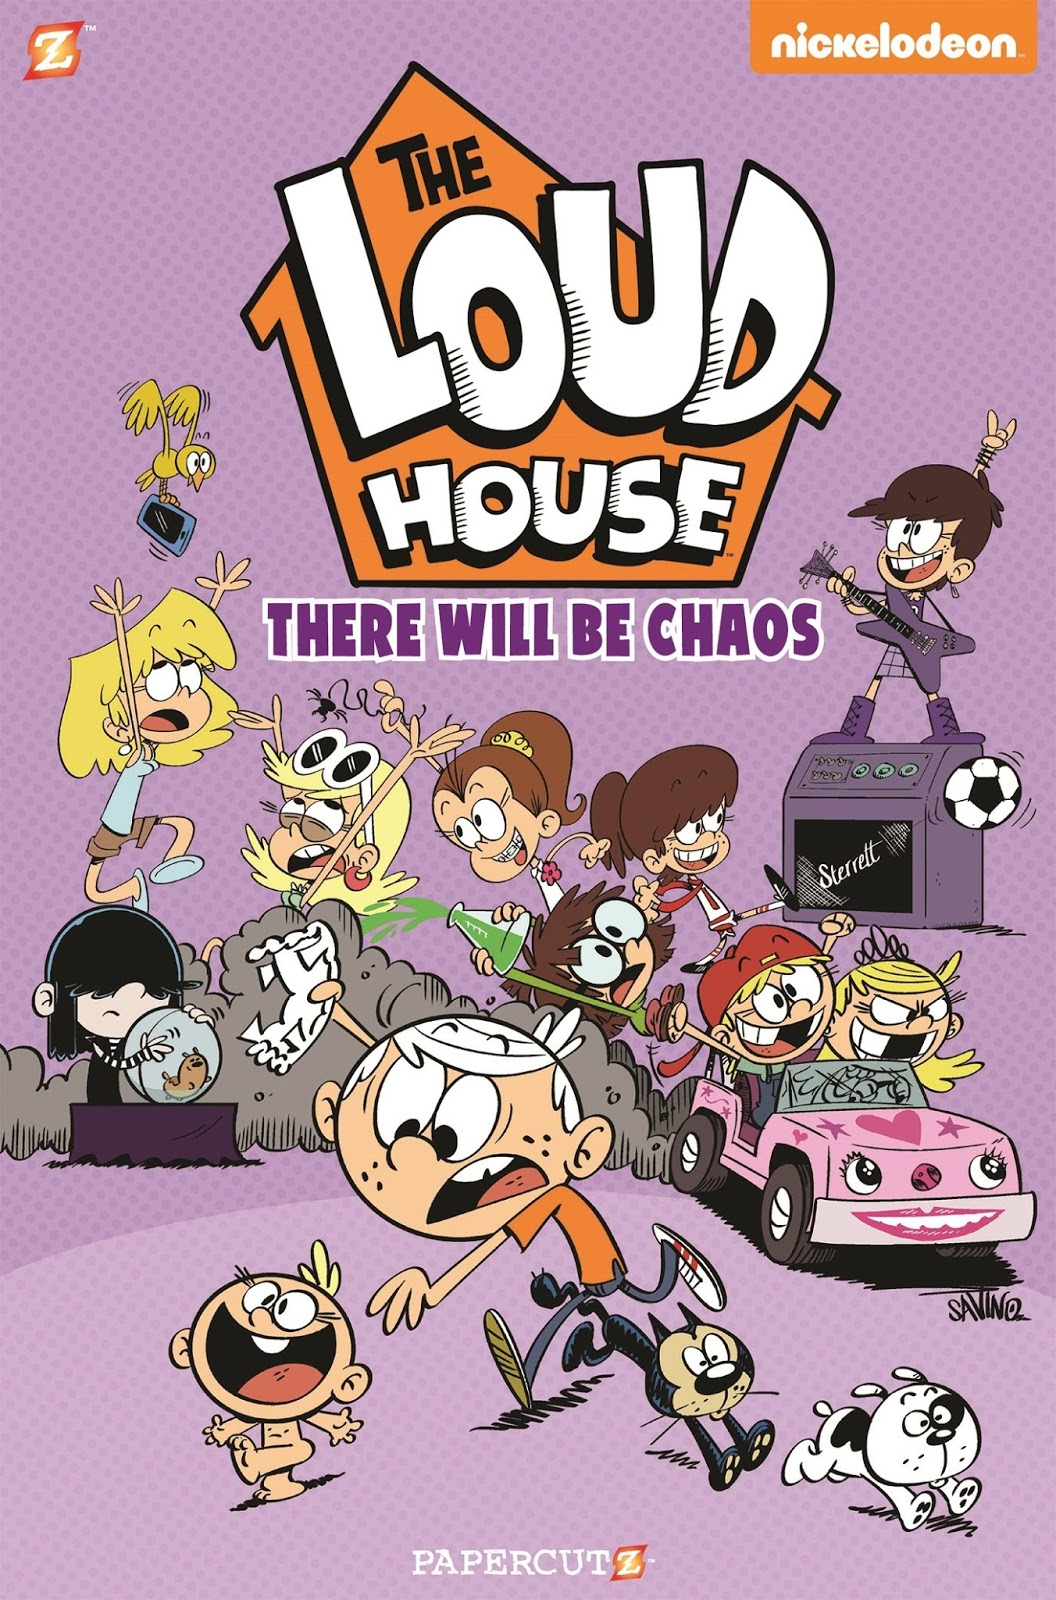 Pics photos description from nick jr favorites vol 2 dvd wallpaper - Papercutz And Penguin Random House Have Announced Plans To Release Three Brand New Laugh Out Loud Original The Loud House Books Inspired By Nickelodeon S